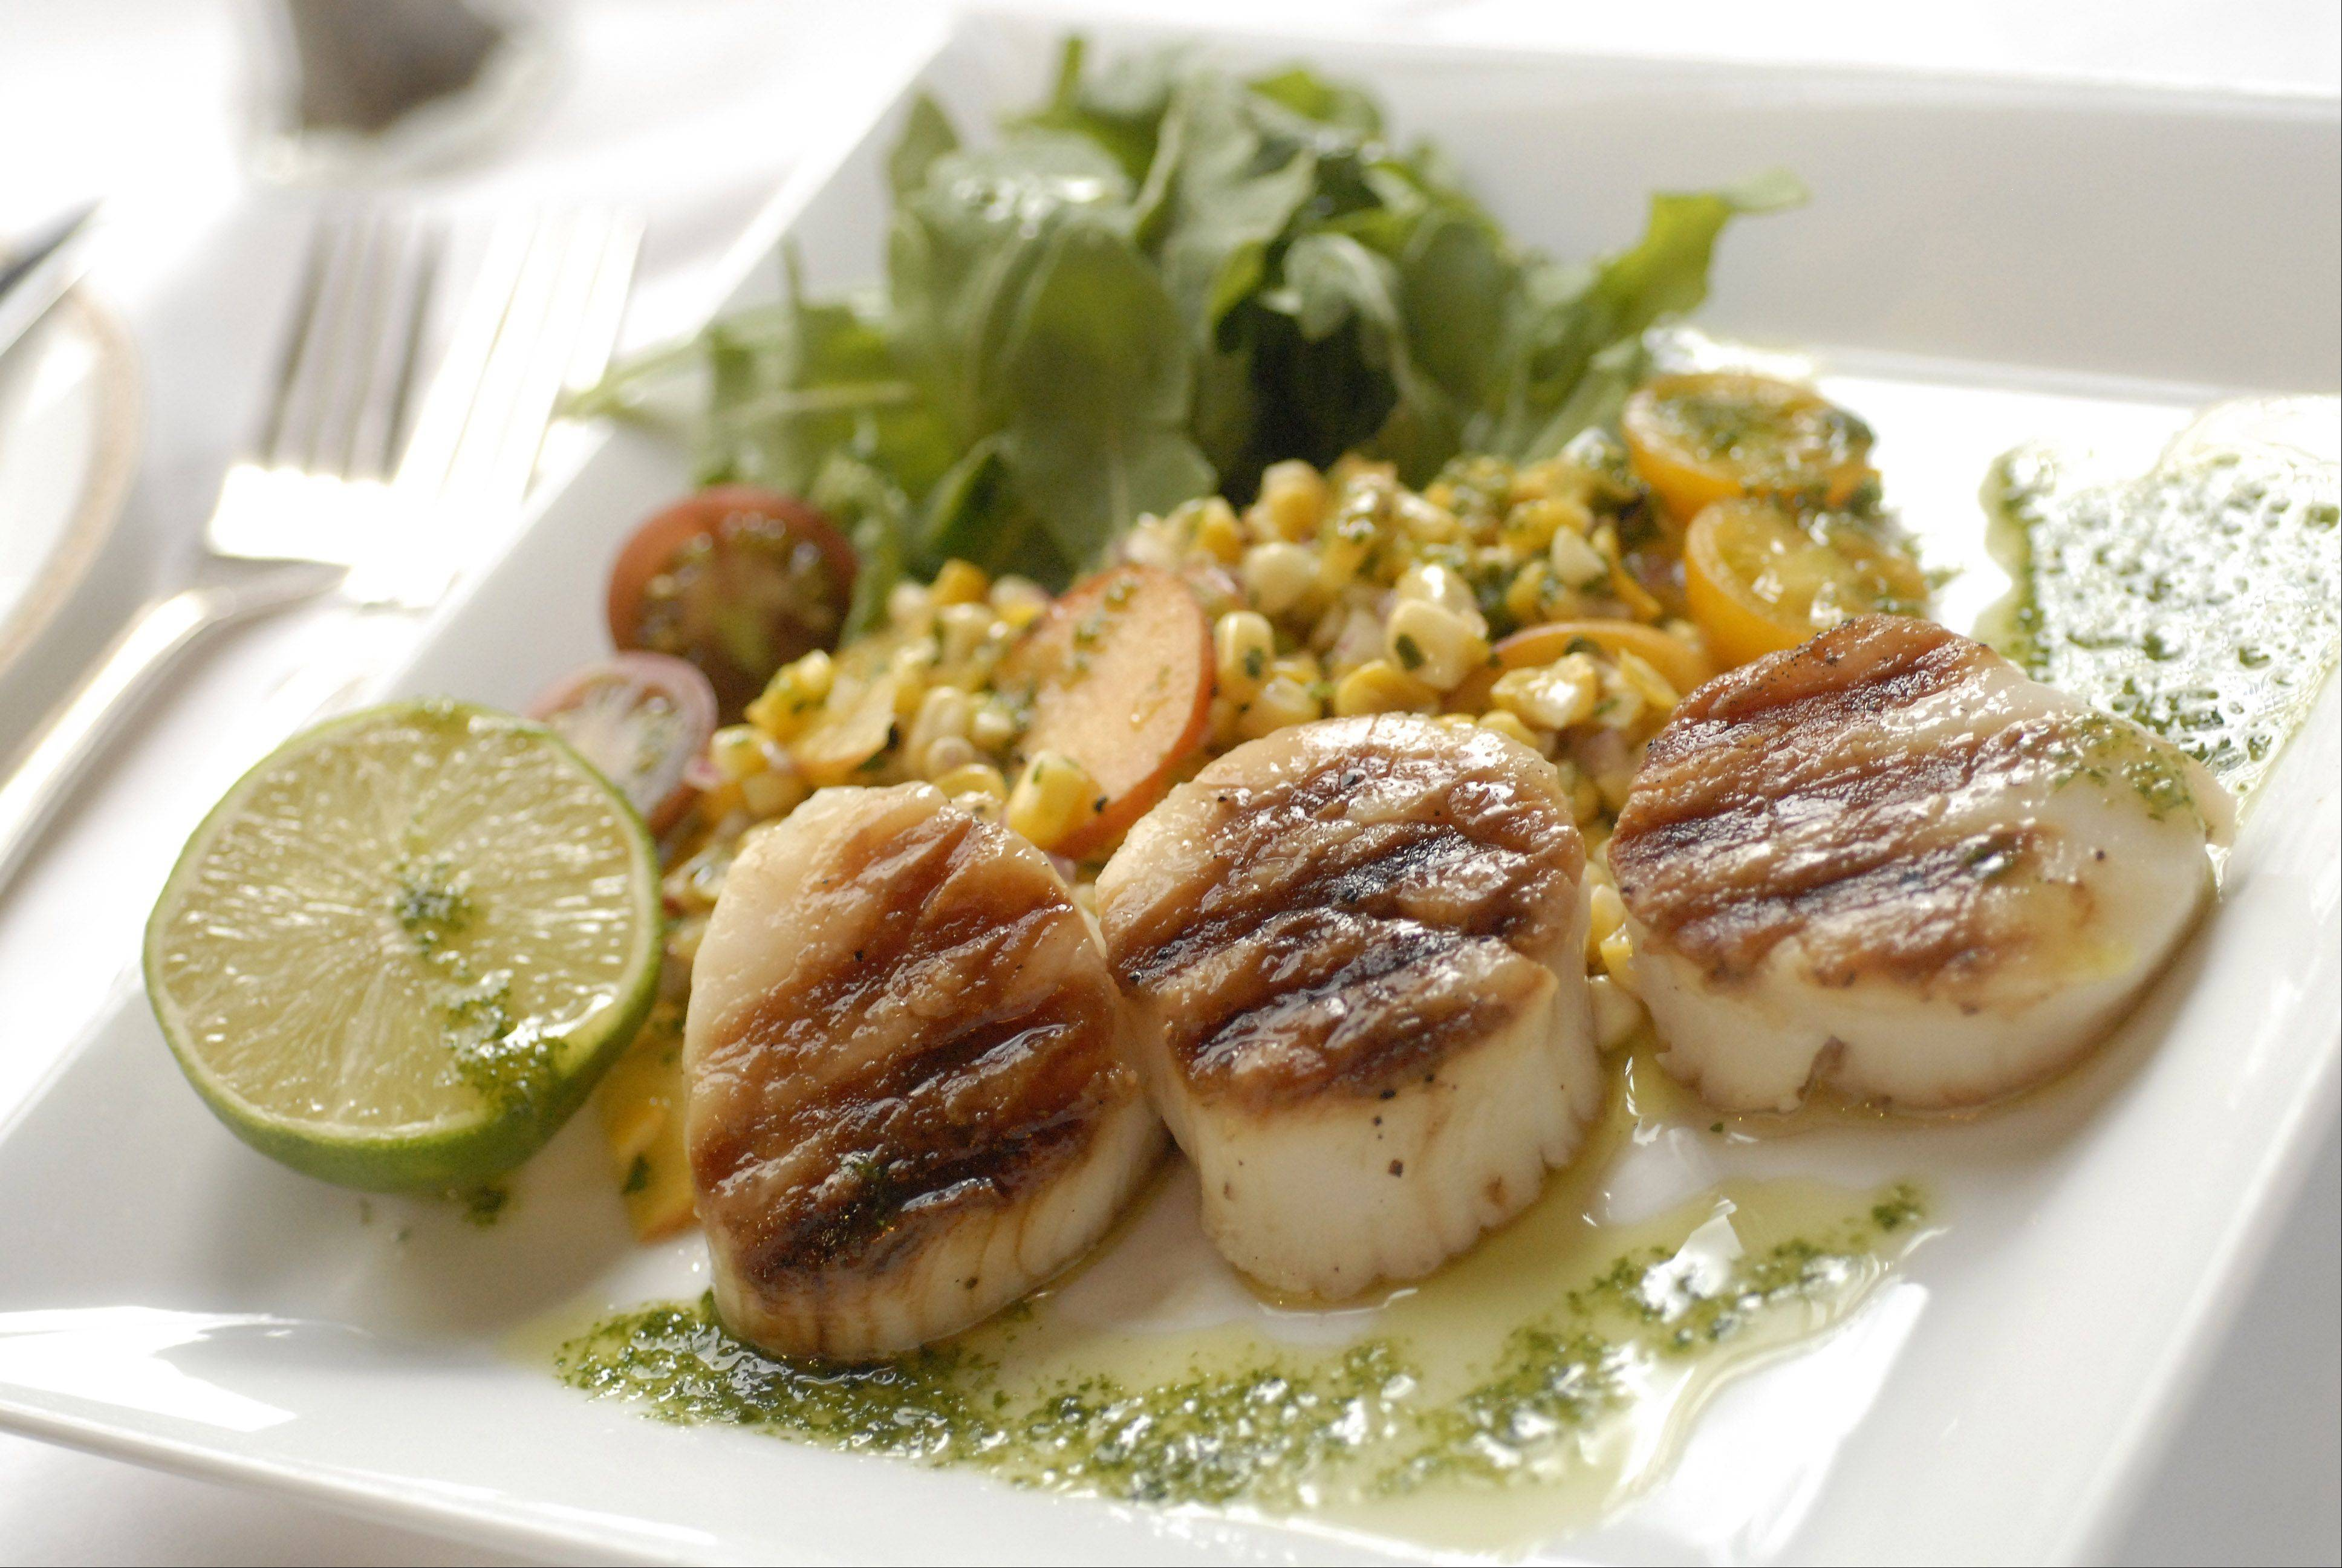 Chef Michael Garbin's Sea Scallops with Roasted Corn and Peach Salad with Arugula and Cilantro Oil pleases diners at the Union League of Chicago. He said it takes about 45 minutes to prepare at home.